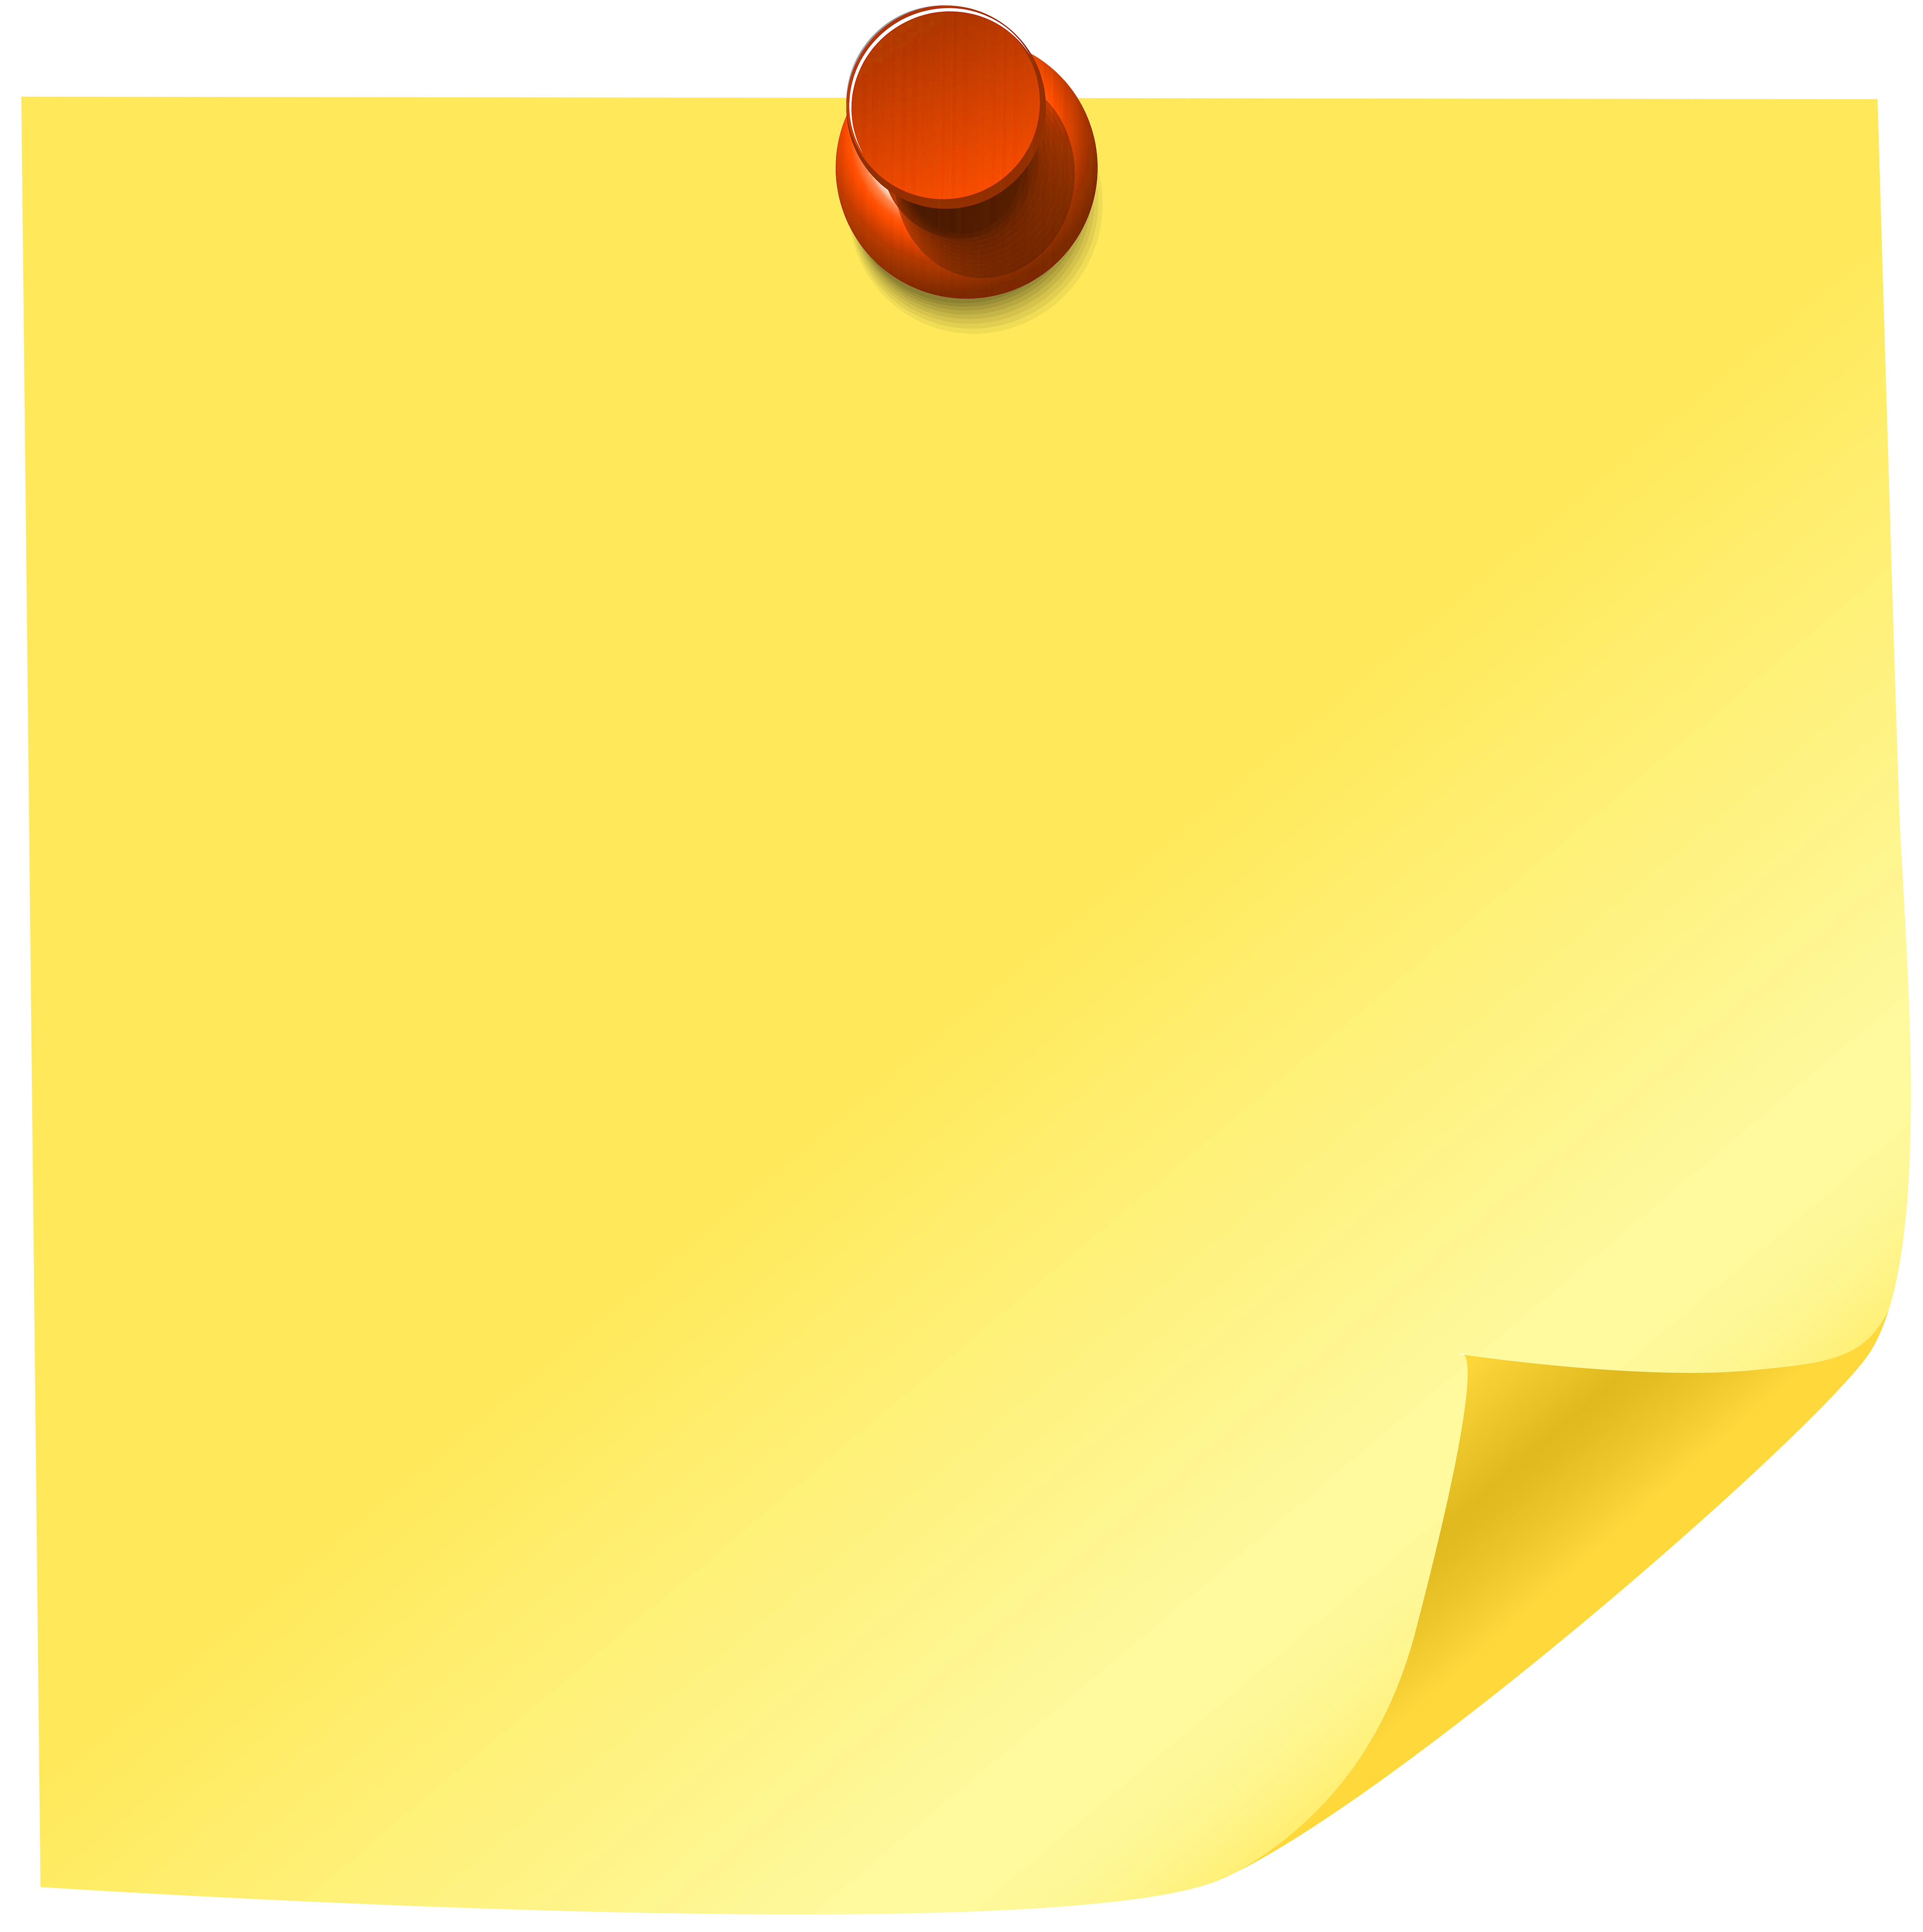 Sticky Note Clipart   Free download on ClipArtMag